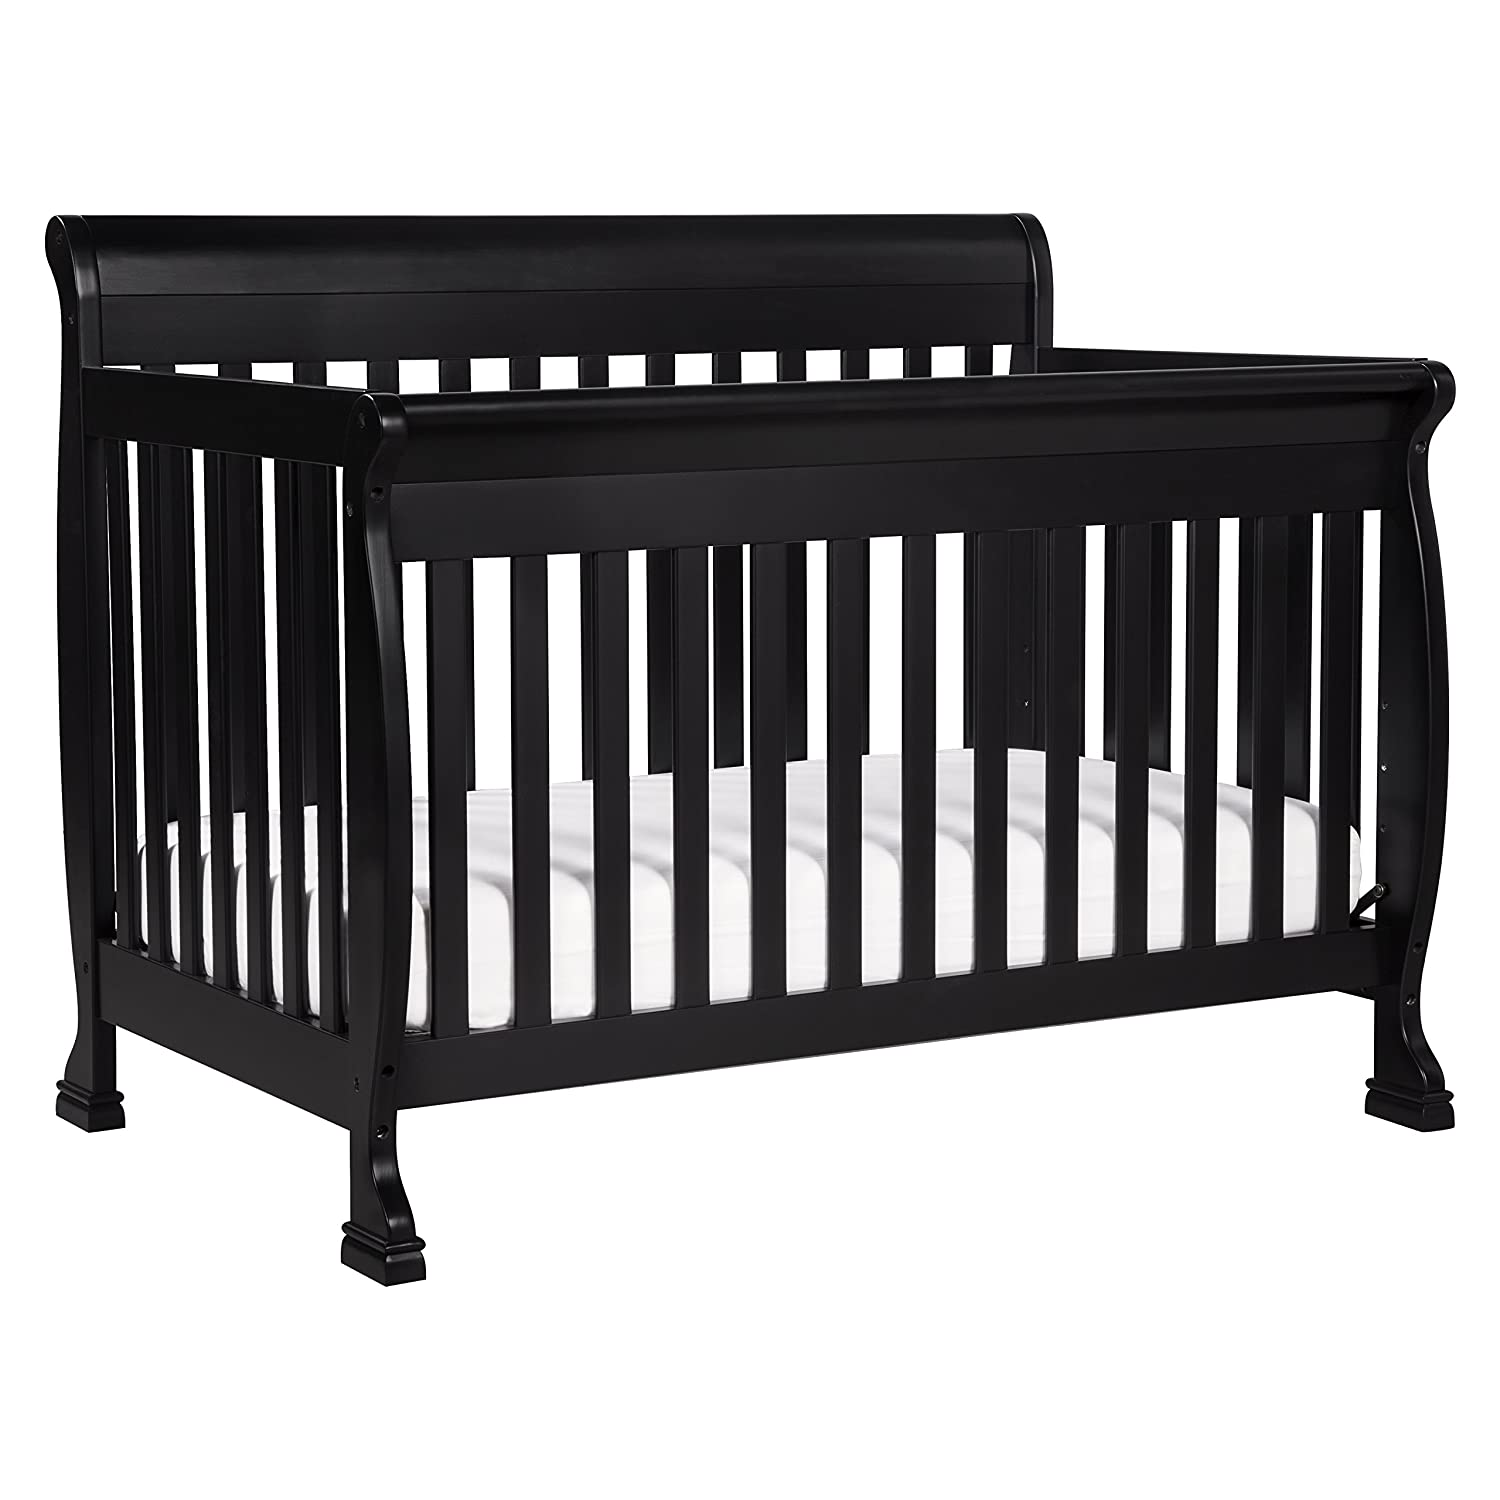 Davinci Kalani Convertible Crib 4 In 1 With Toddler Bed